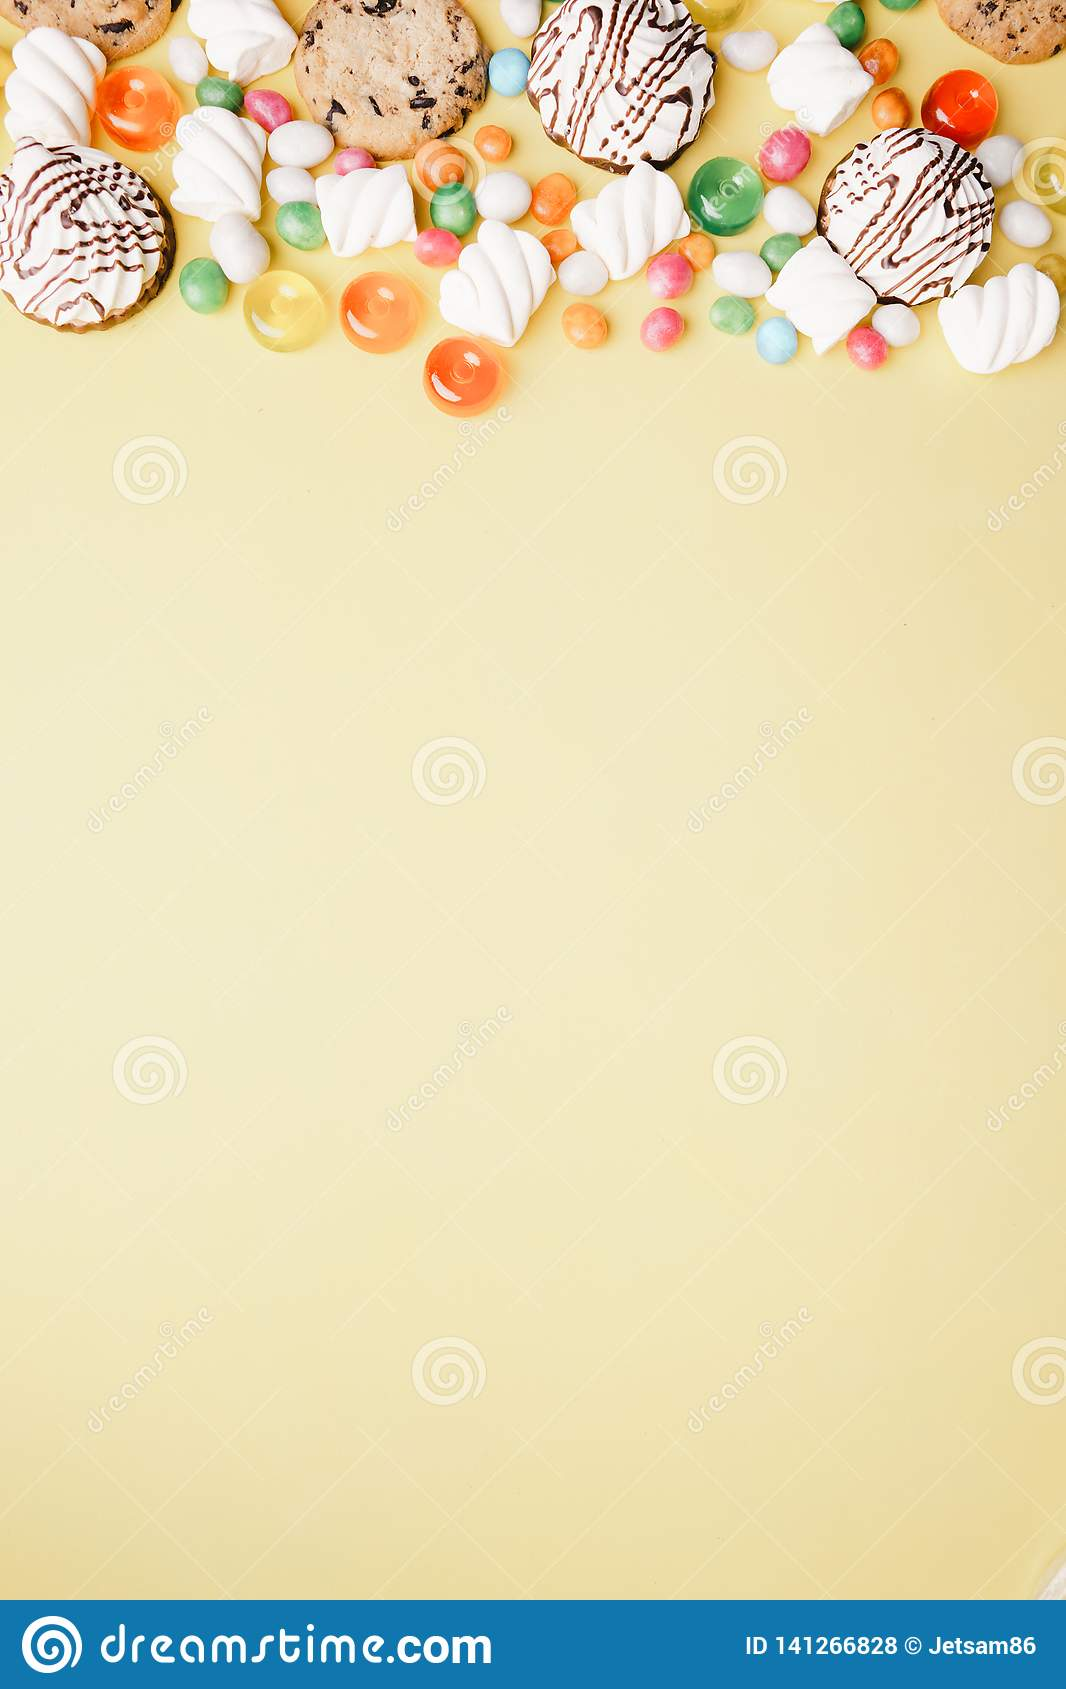 Cookies and candy background, confectionery design